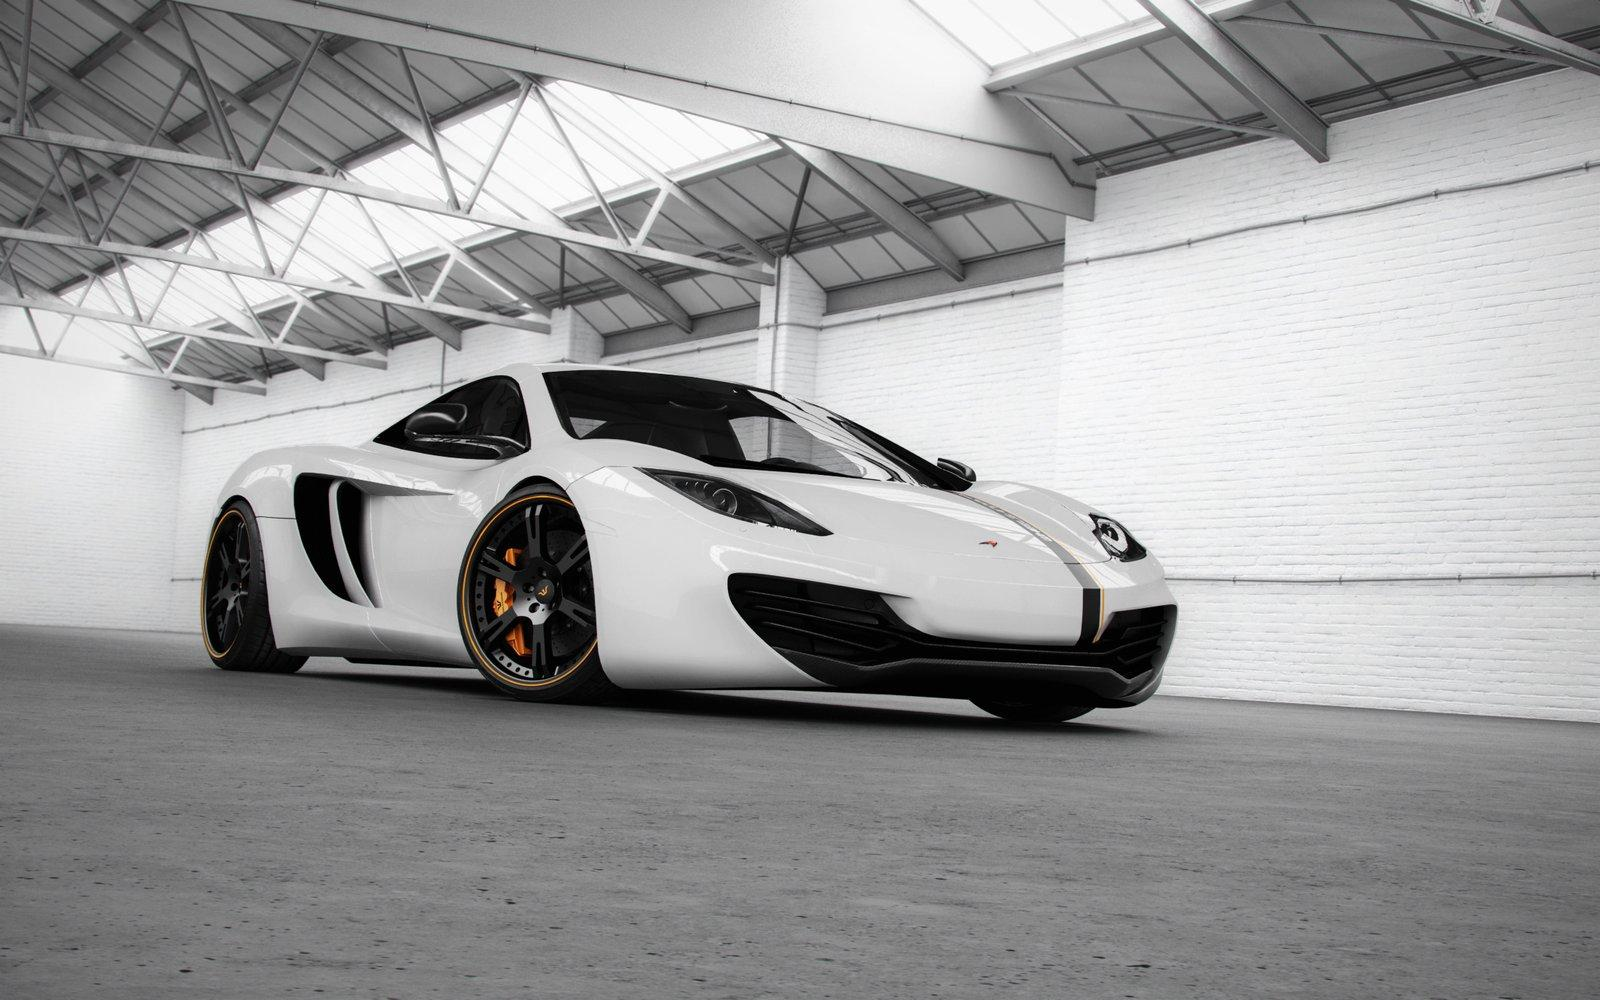 2012 McLaren MP4 12C Toxique Evil 1 2012 McLaren MP4 12C Toxique Evil by Wheelsandmore